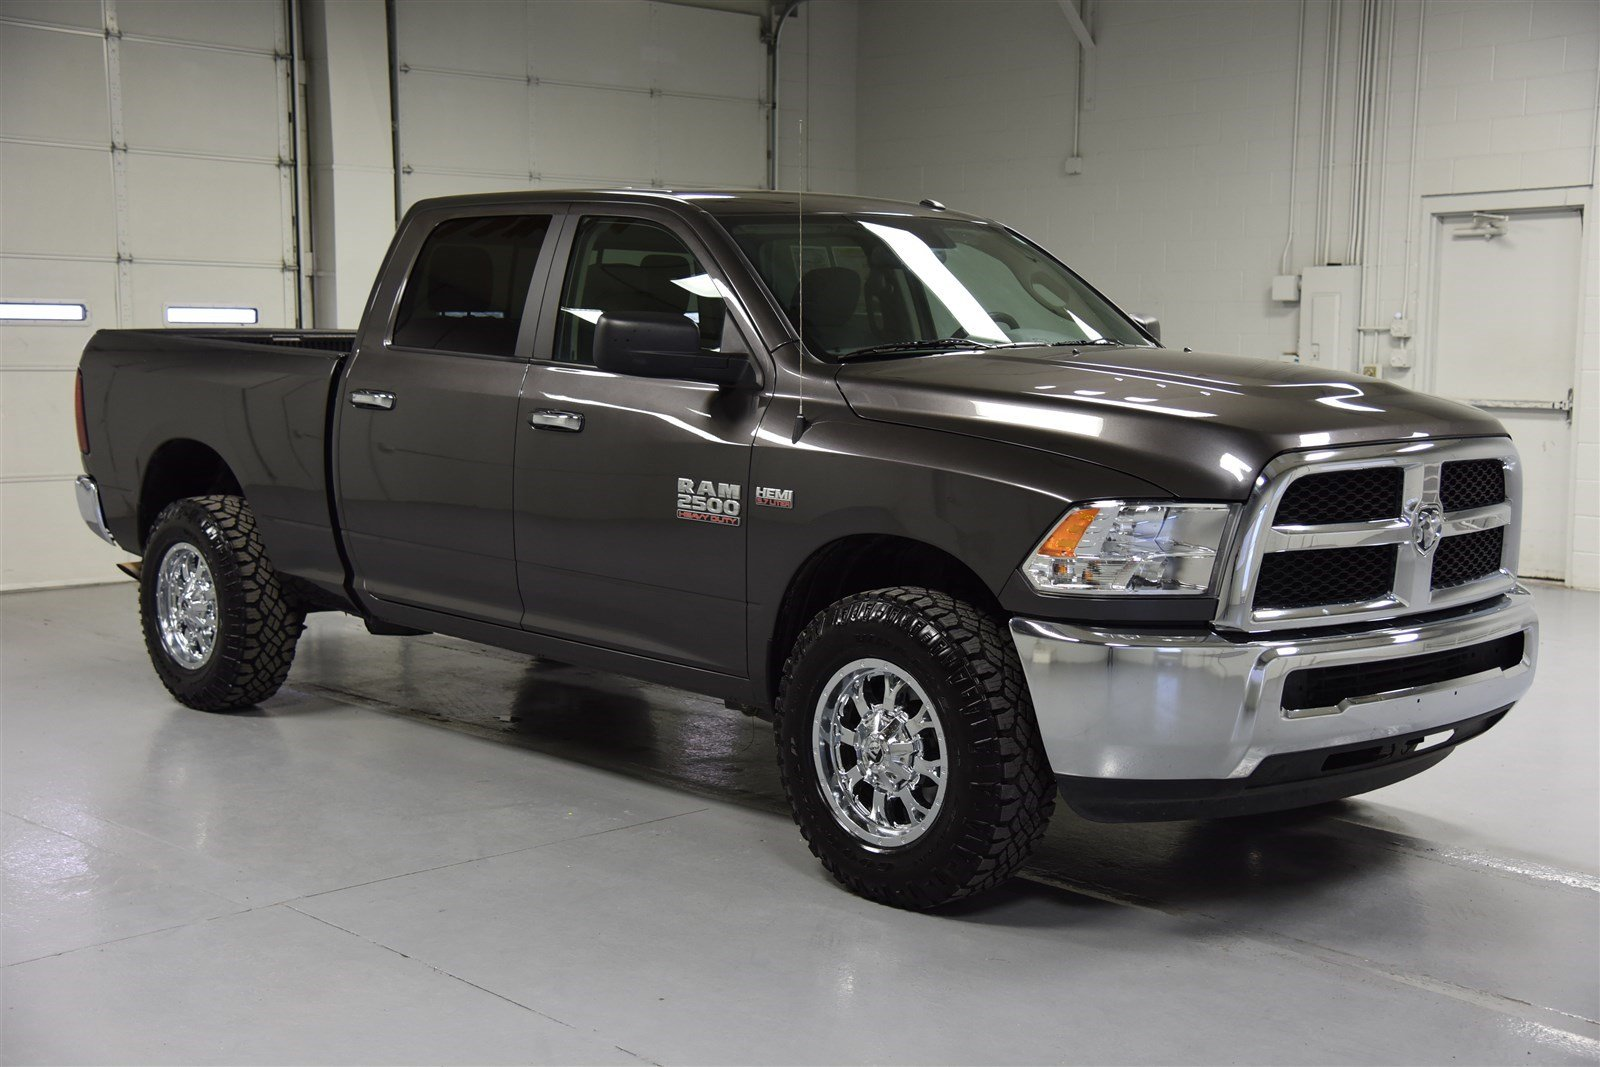 pre owned 2016 dodge ram 2500 crew cab slt truck in wichita e562950 super car guys. Black Bedroom Furniture Sets. Home Design Ideas